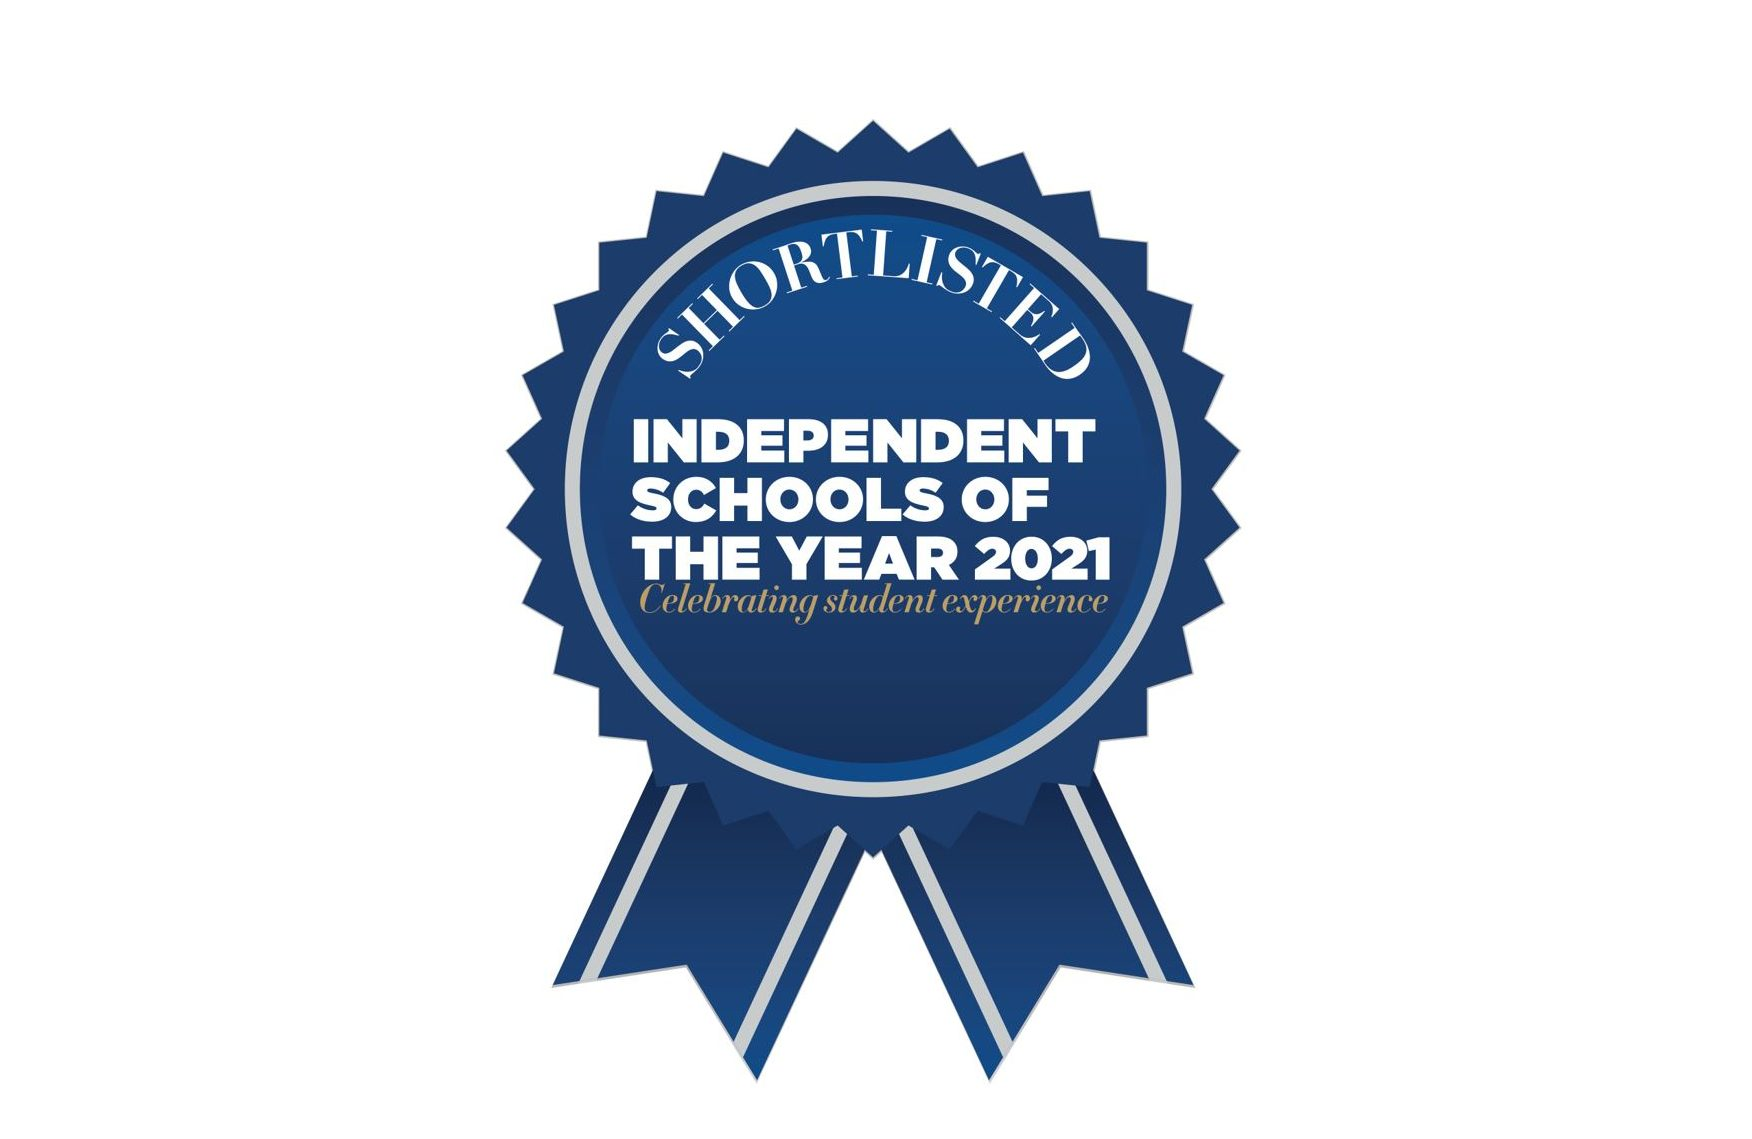 Stamford Shortlisted for Independent Schools of the Year Awards 2021